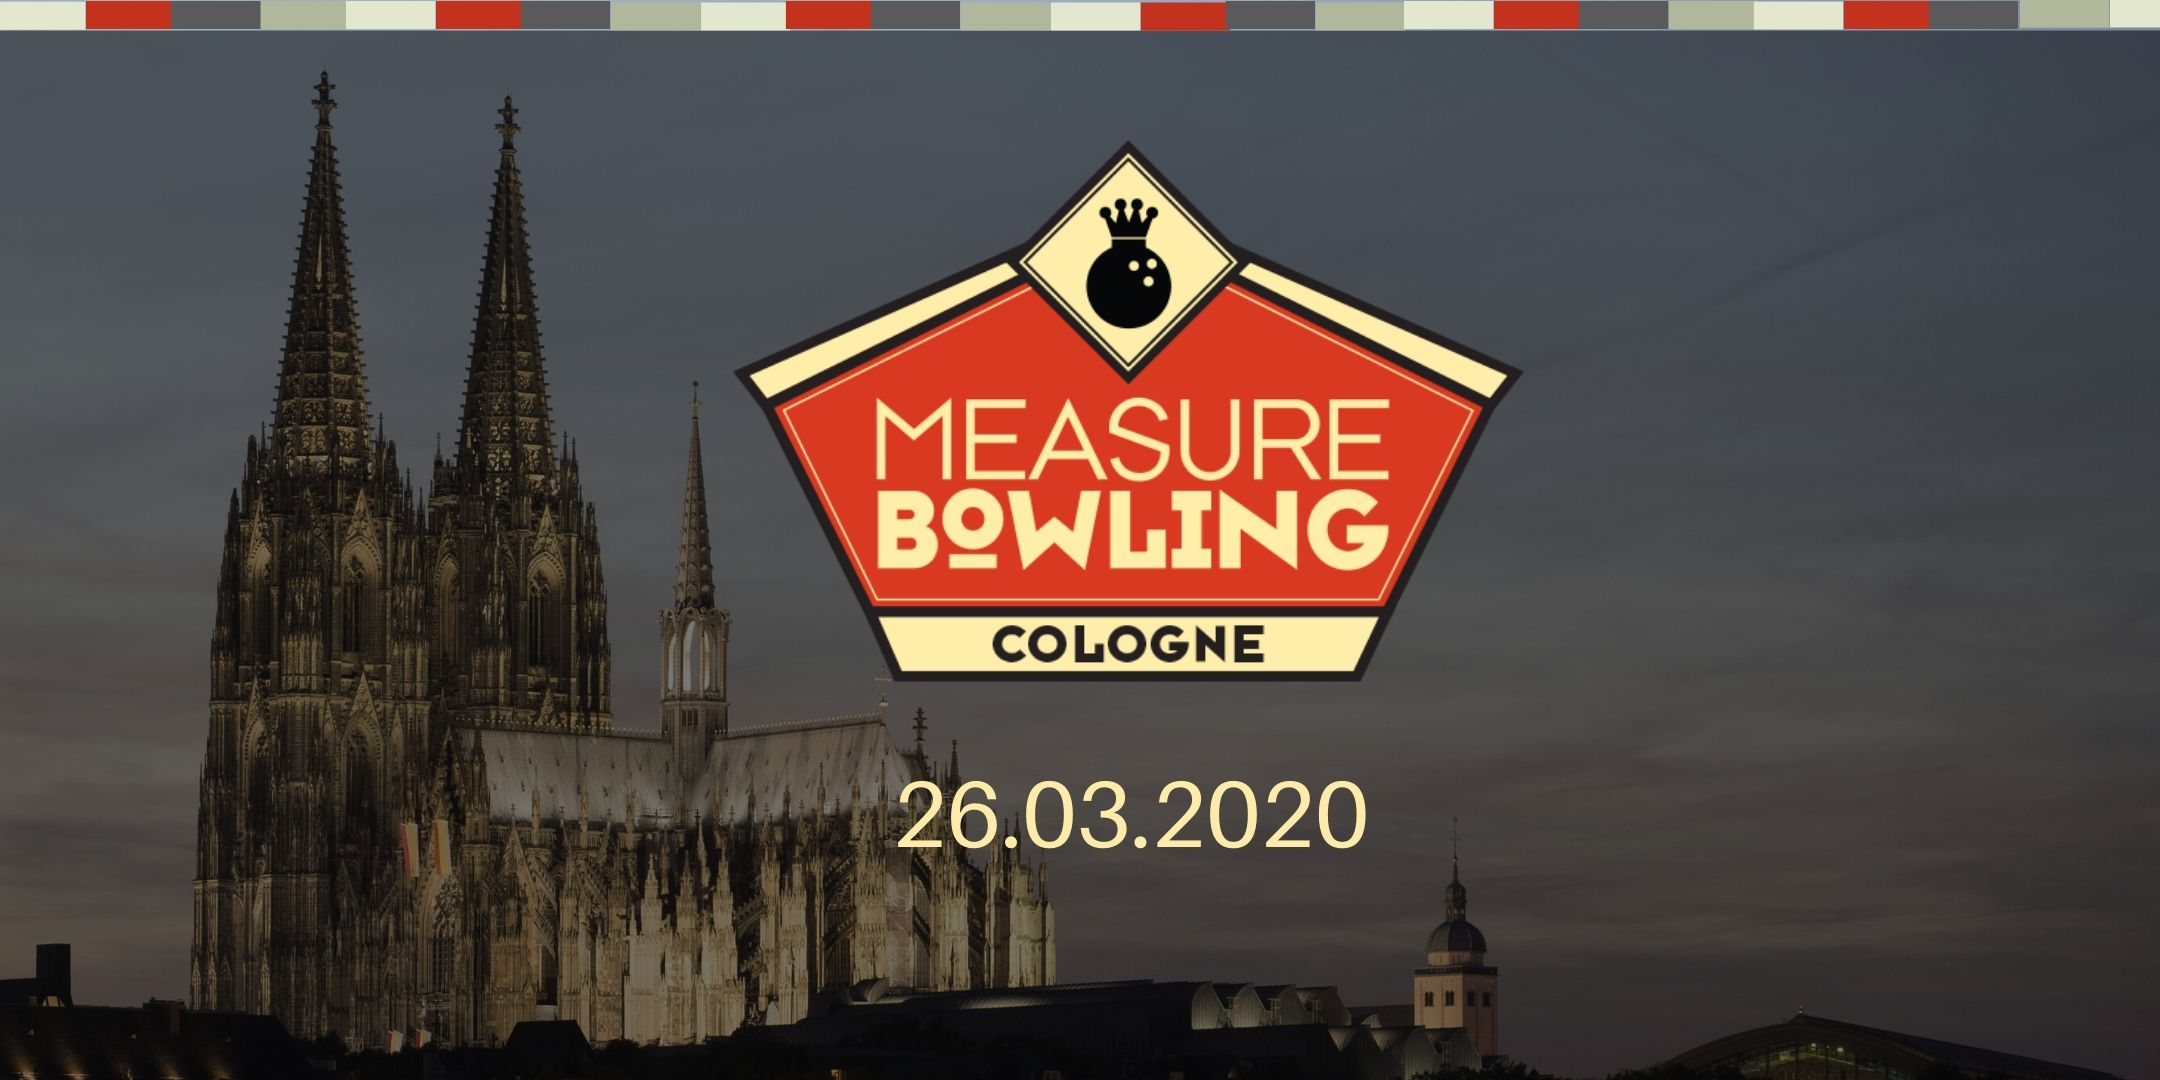 Measure Bowling Cologne 2020